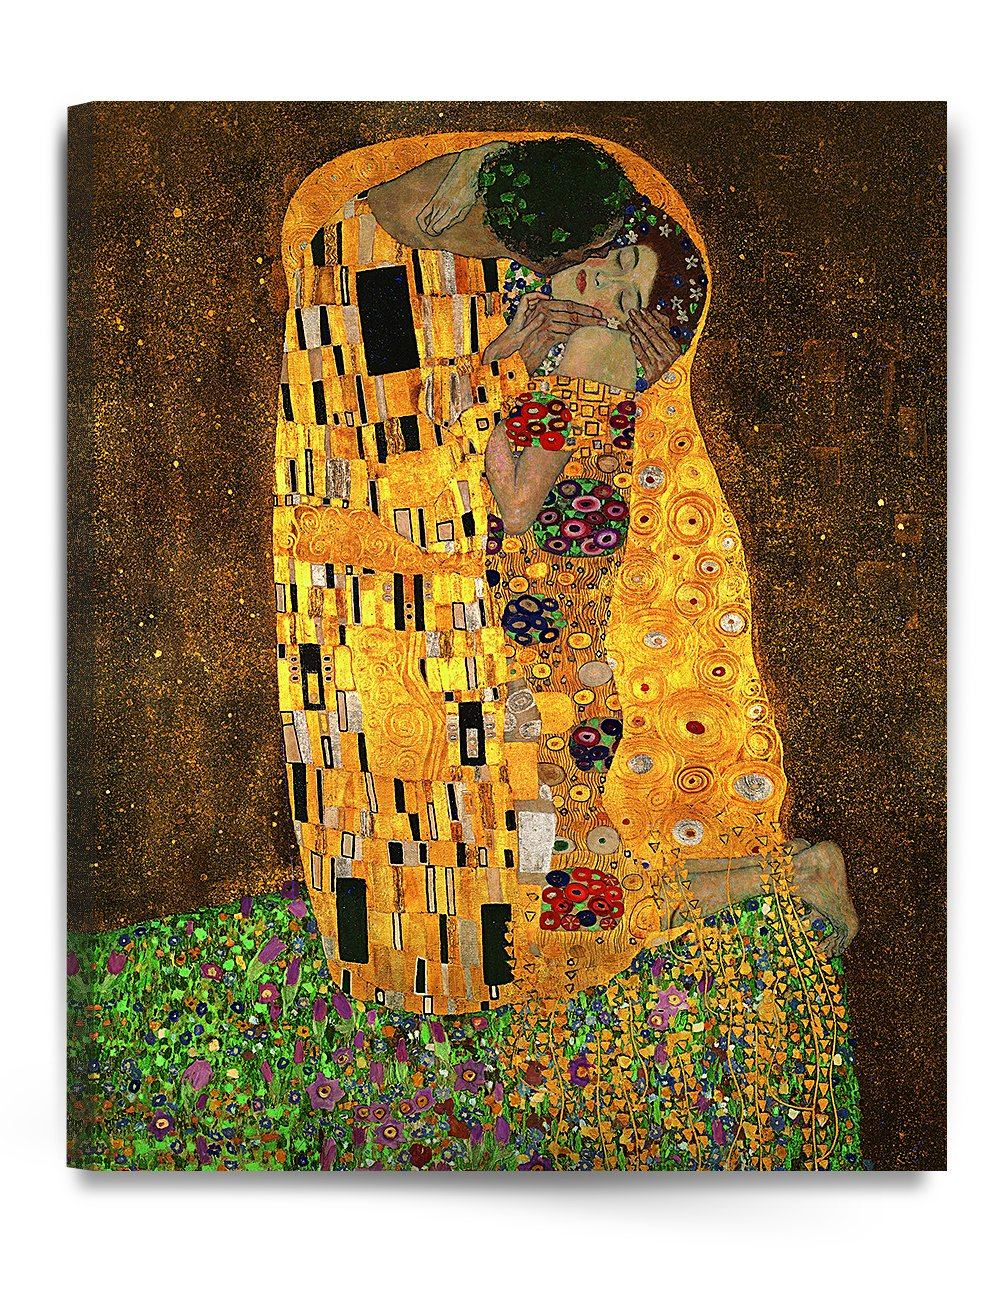 """Amazon.com: DecorArts - The Kiss, by Gustav Klimt. Giclee printed on canvas  stretched gallery wrapped, ready to hang 24x30"""": Posters & Prints"""